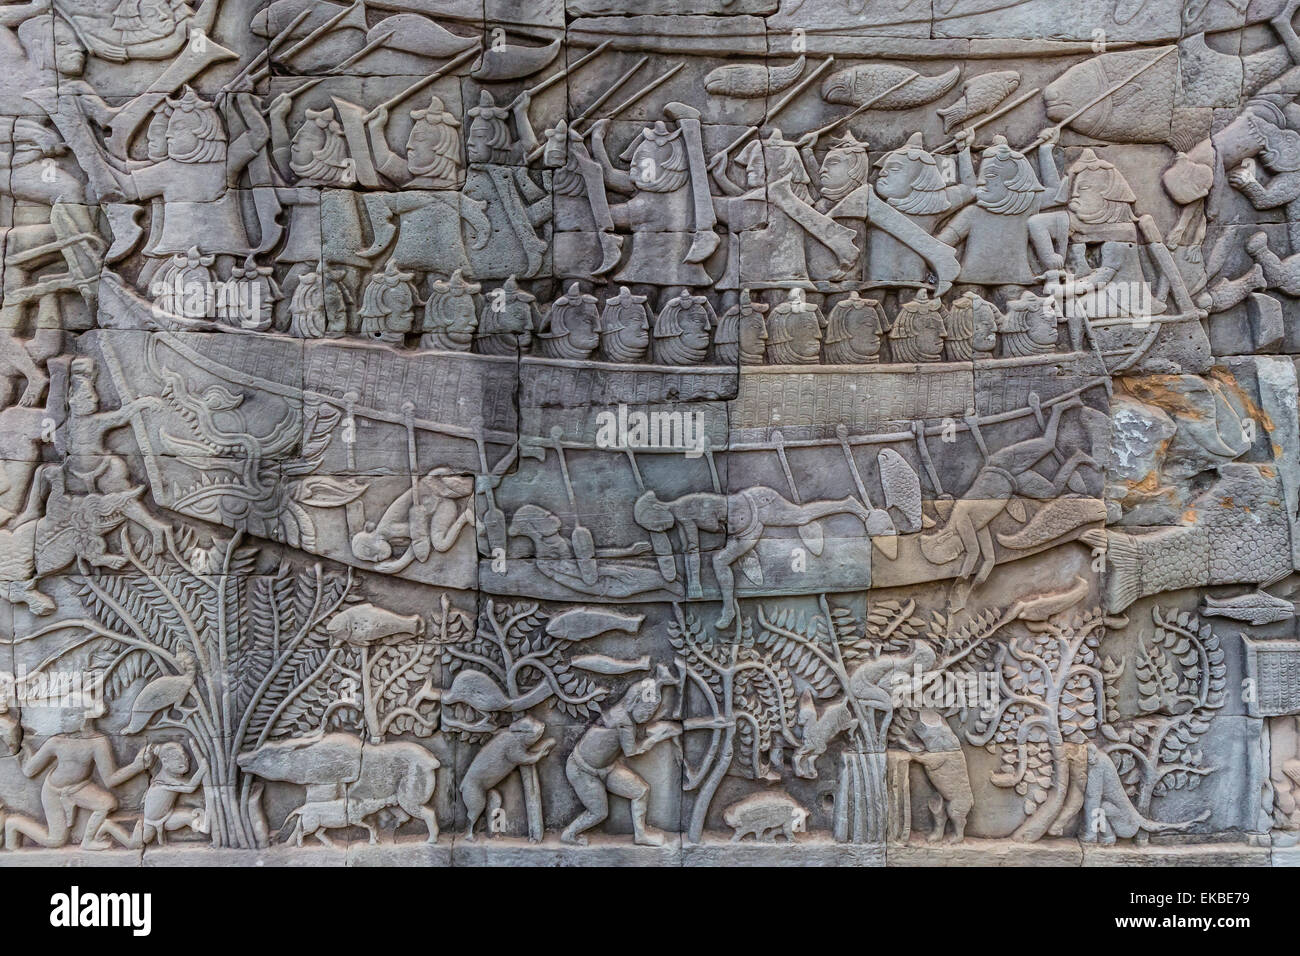 Bas-relief carvings in Prasat Bayon, Angkor Thom, Angkor, UNESCO, Siem Reap, Cambodia, Indochina, Southeast Asia, - Stock Image